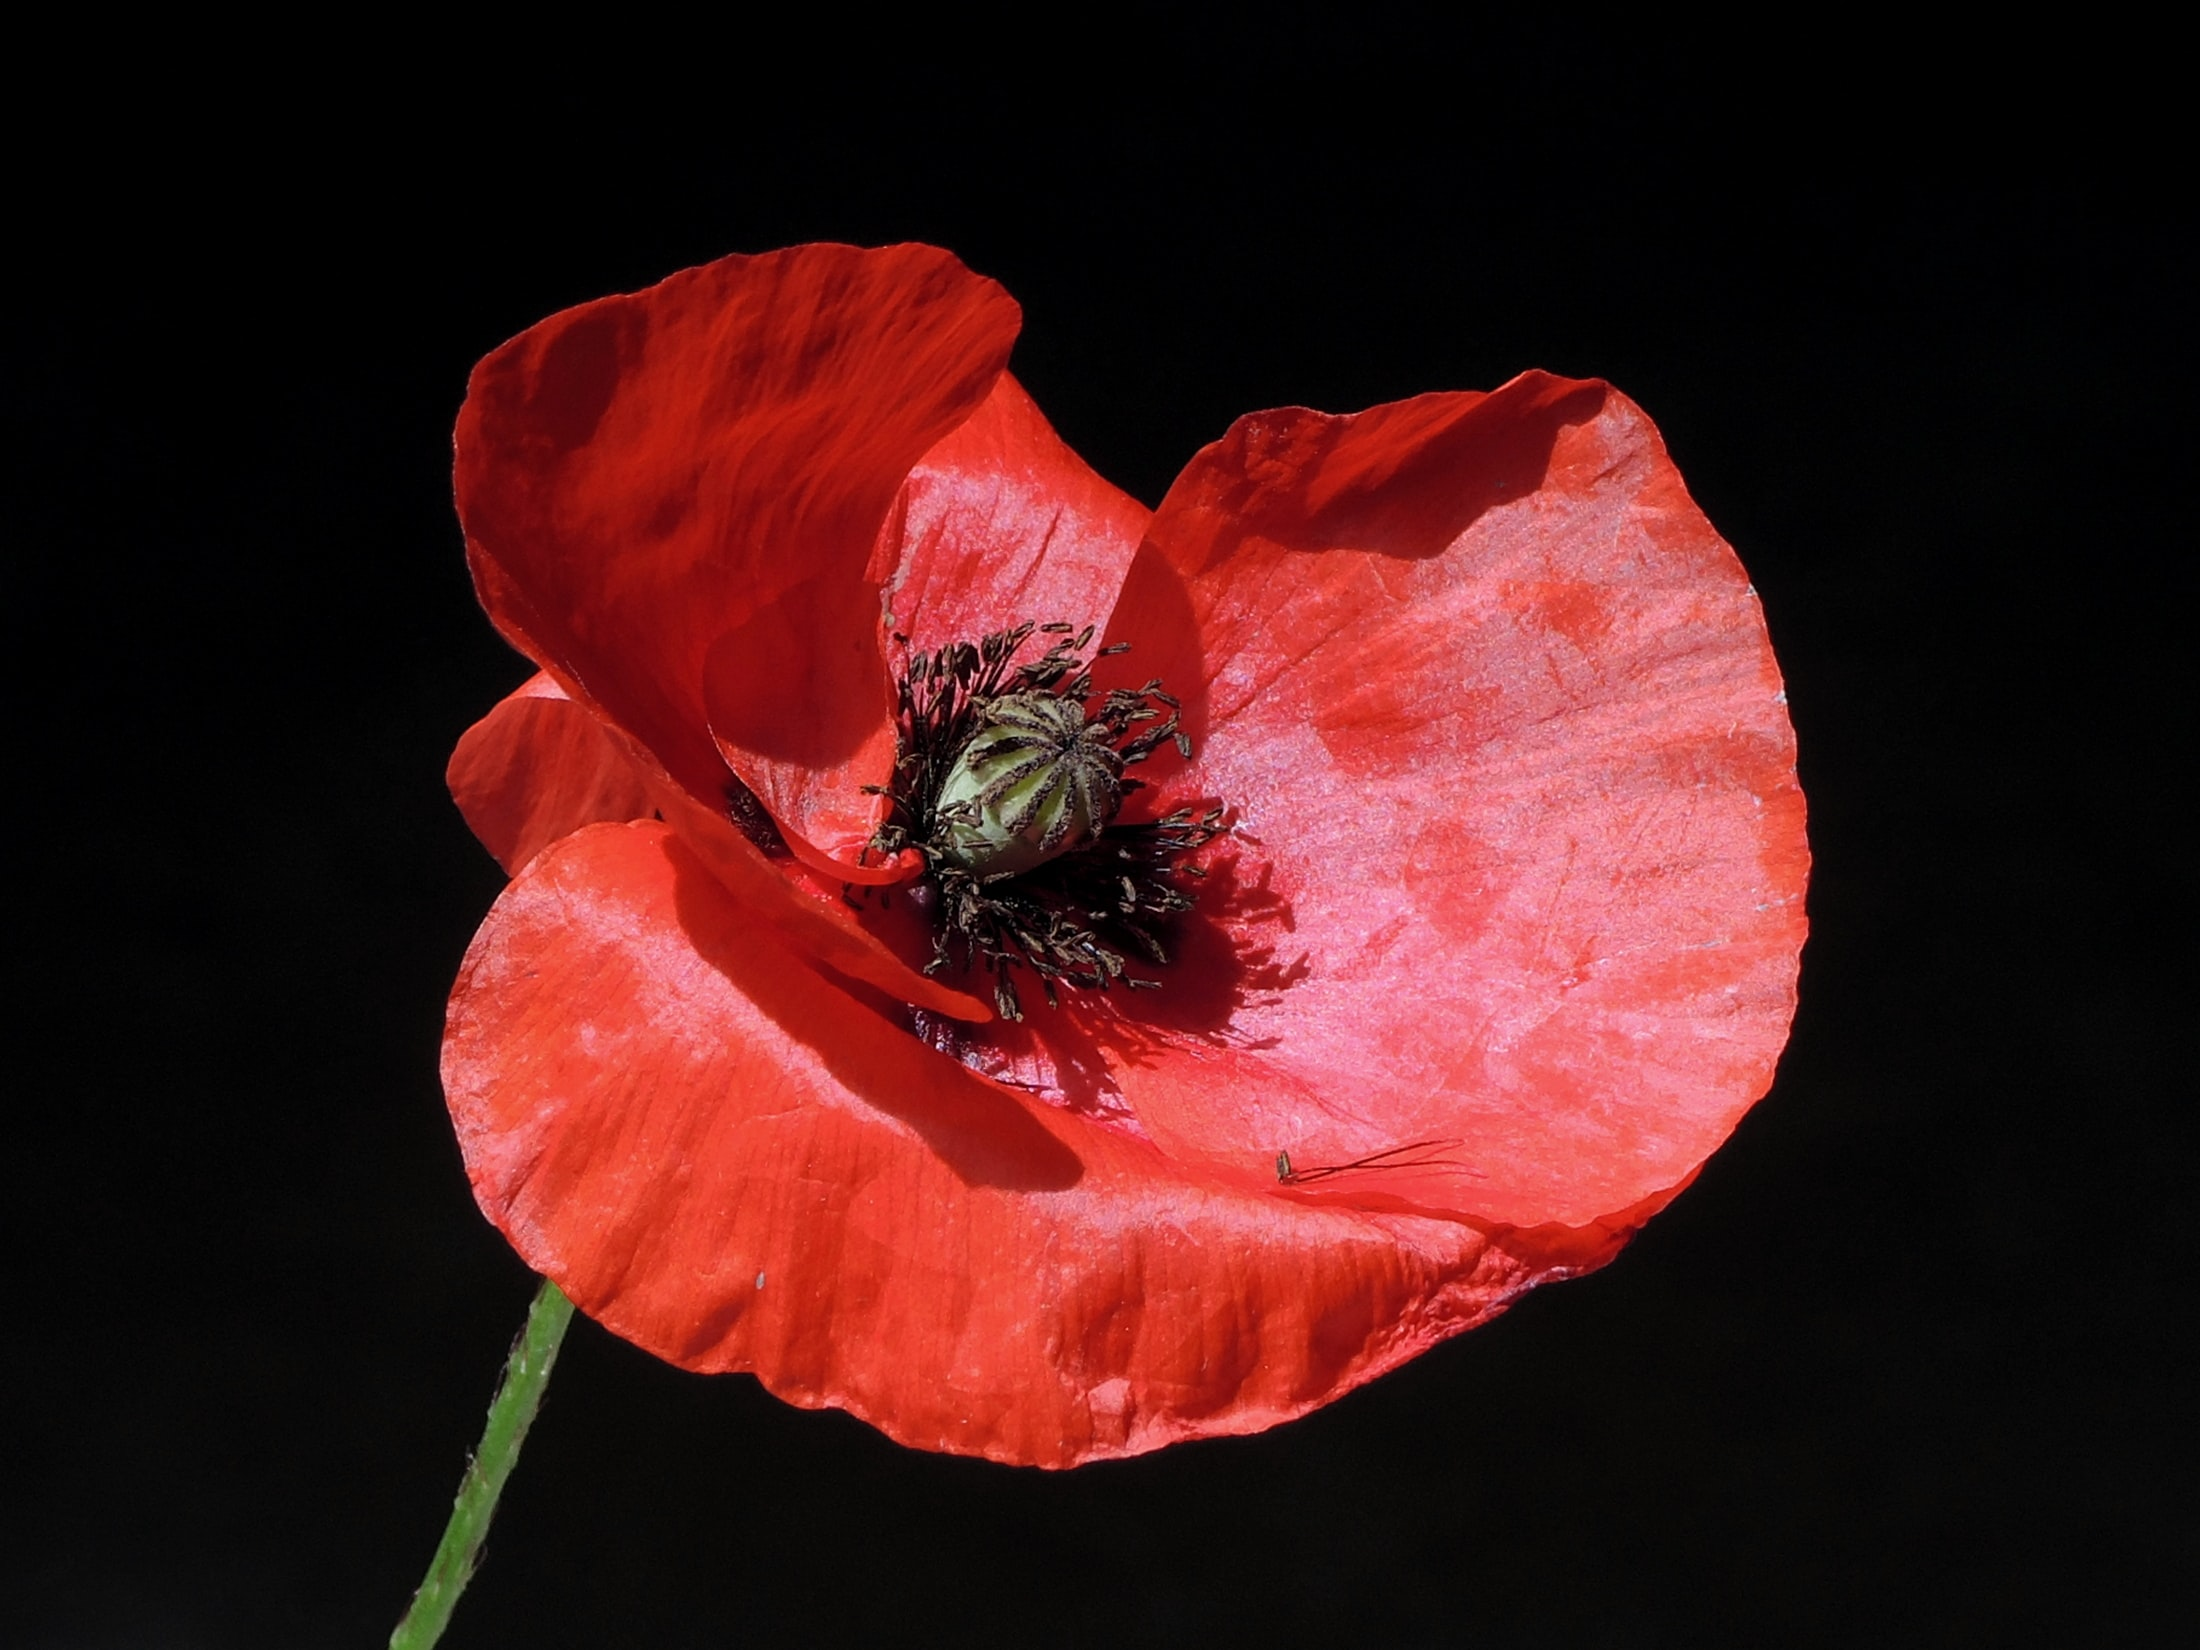 photo of poppy flower